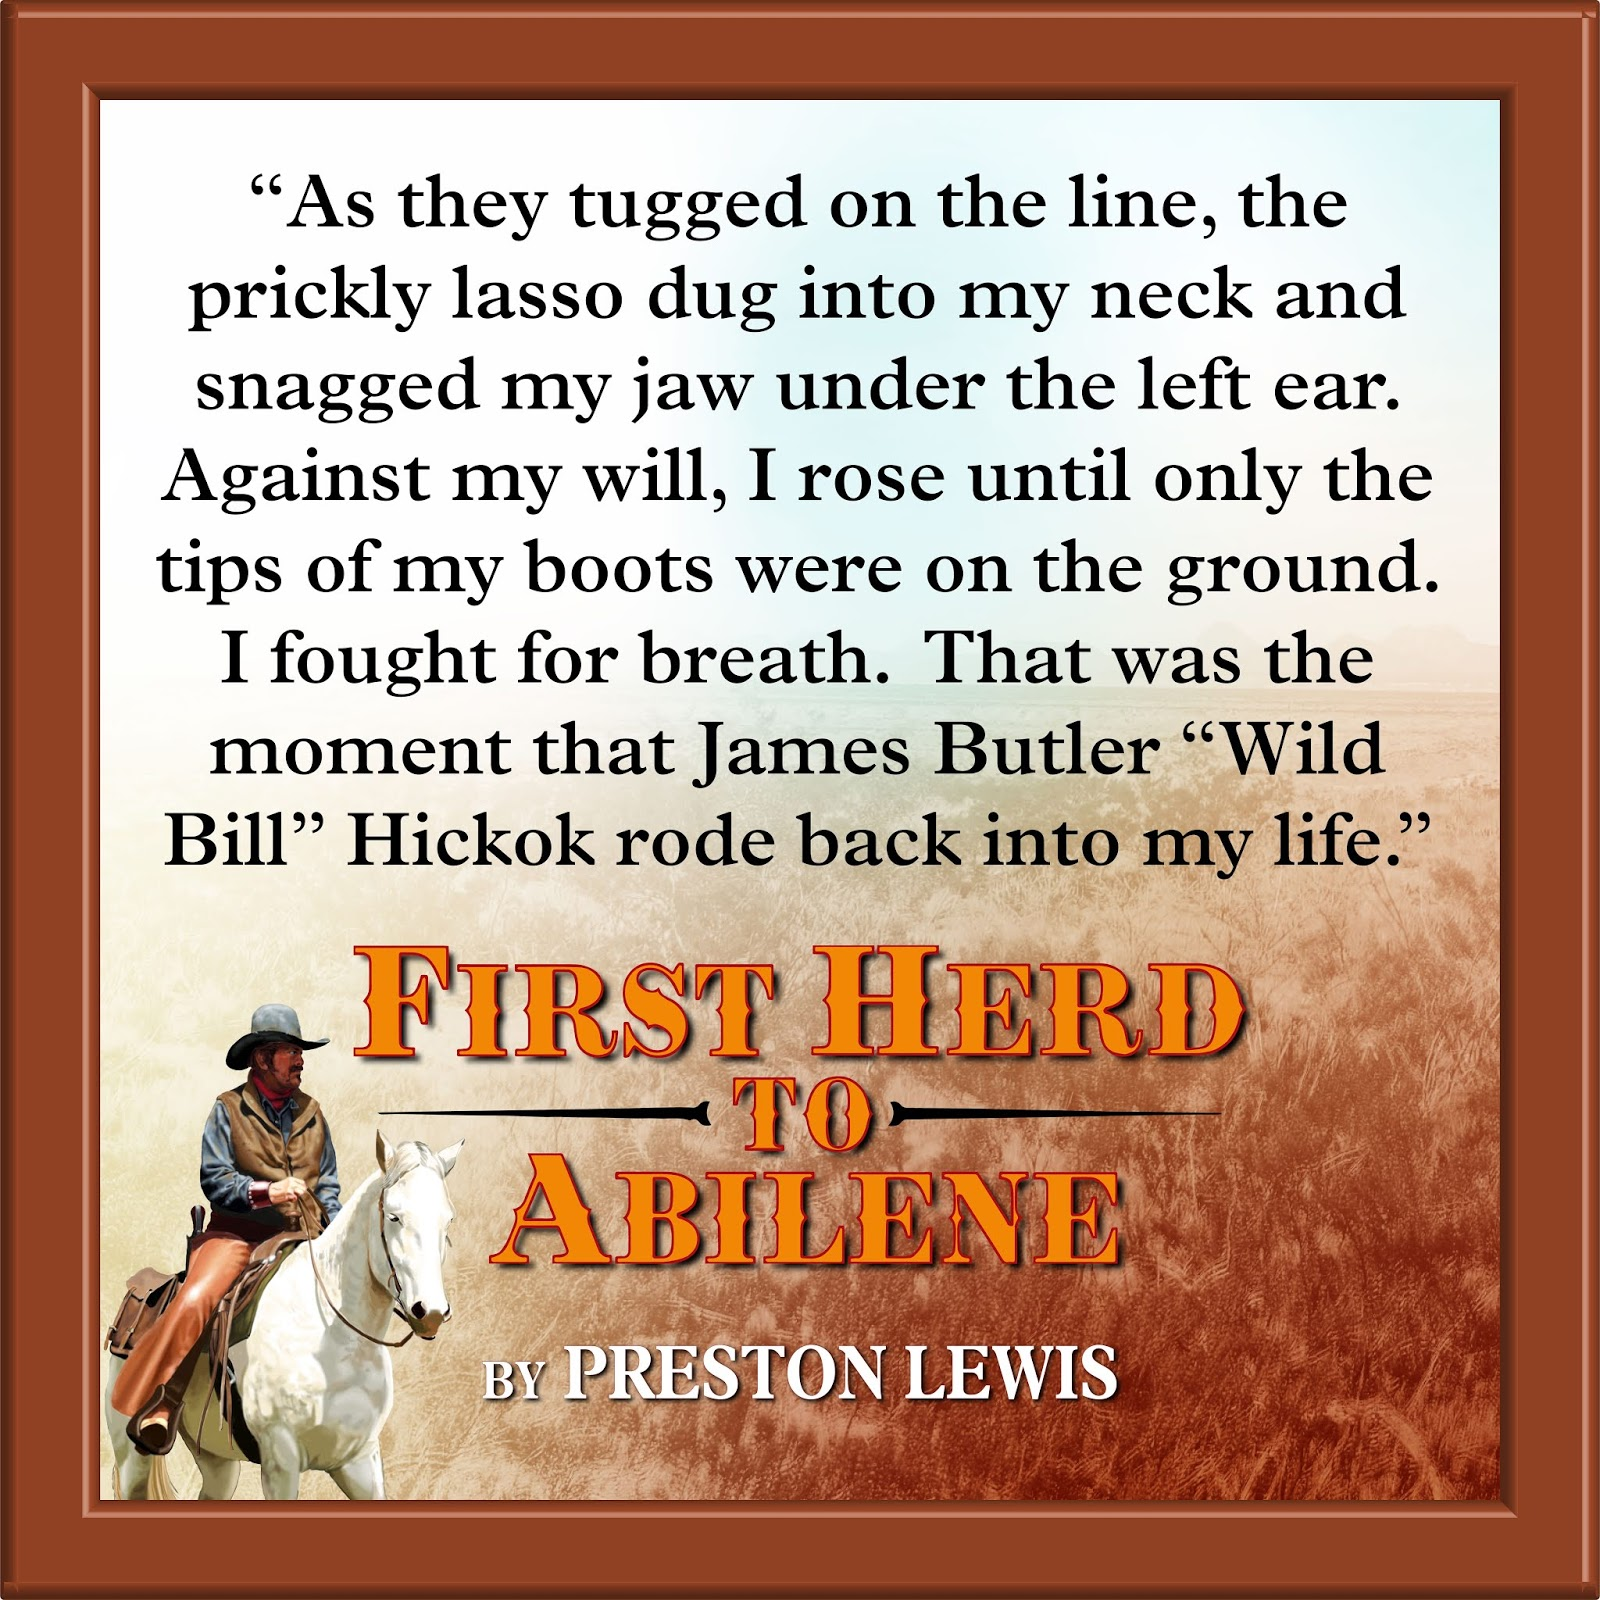 "Book quote: ""As they tugged on the line, the prickly lasso dug into my neck and snagged by jan under the left ear. Against my will, I rose. until only the tips of my boots were on the ground. I fought for breath. That was the moment that James Butler ""Wild Bill"" Hickok rode back into my life."""